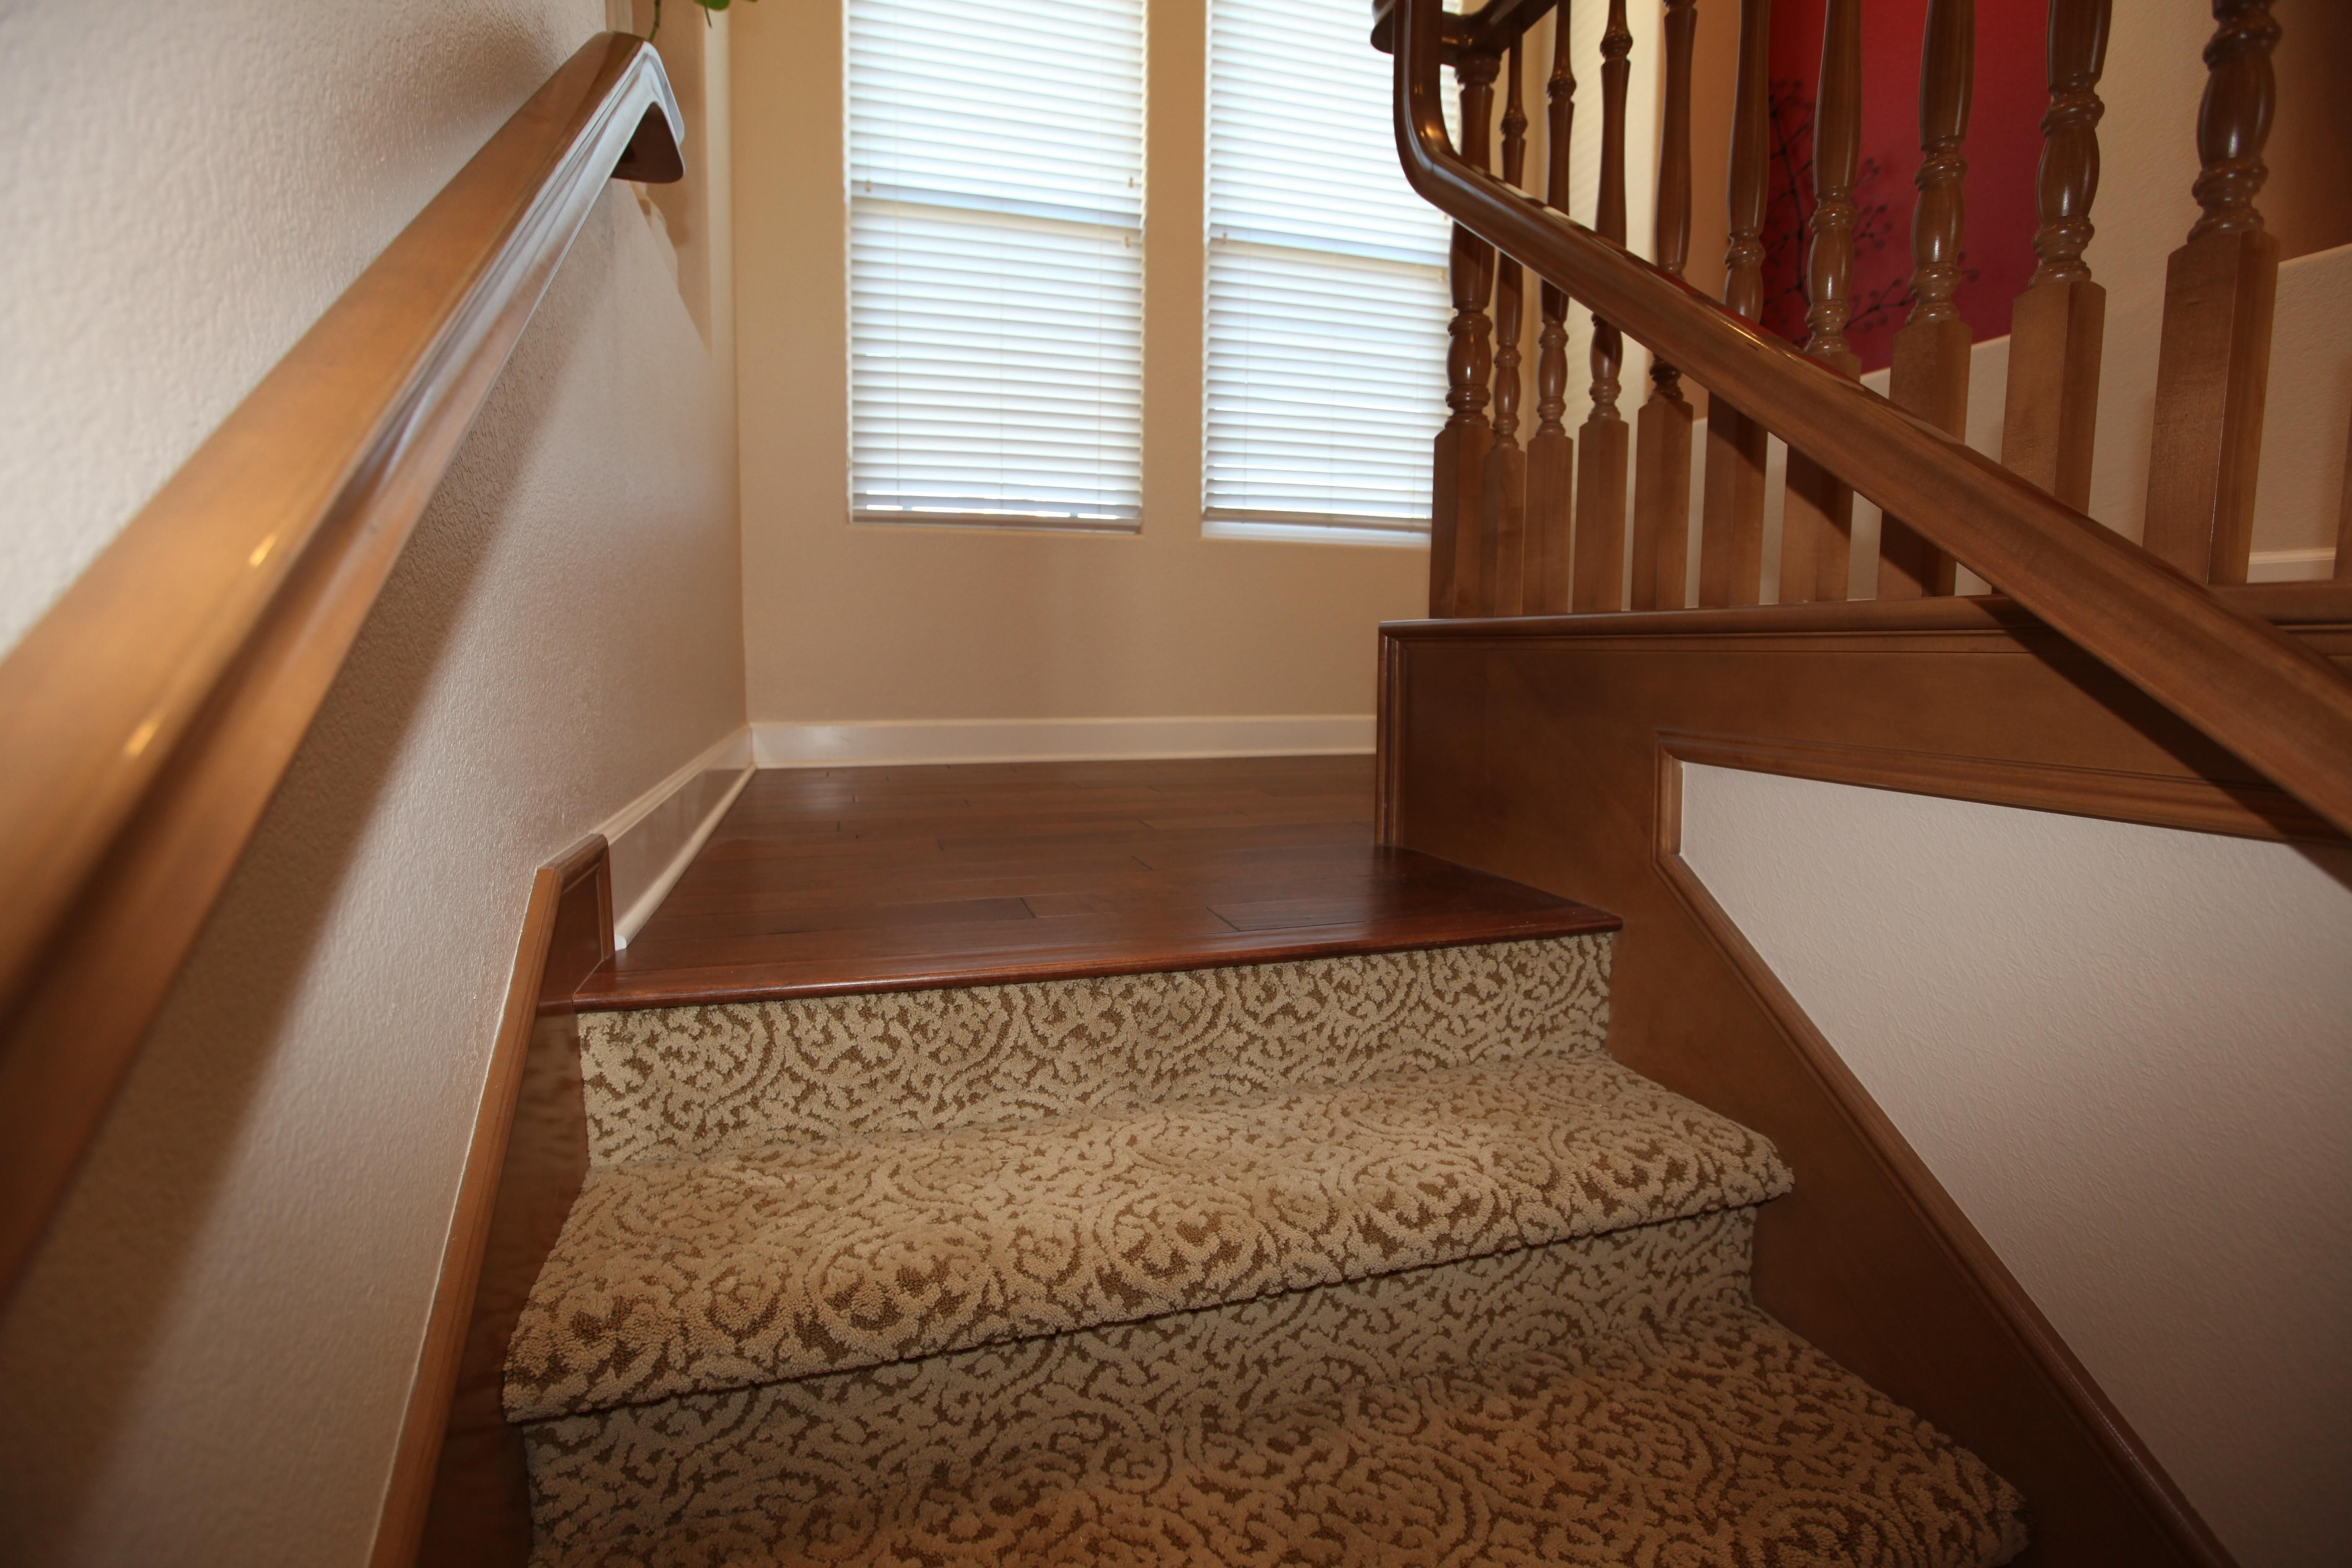 Carpet Stairs To Wood Floor Transition Wood Flooring Is The Most | Carpeted Stairs To Hardwood | Diy | Hardwood Flooring | Middle | Old House | Staircase